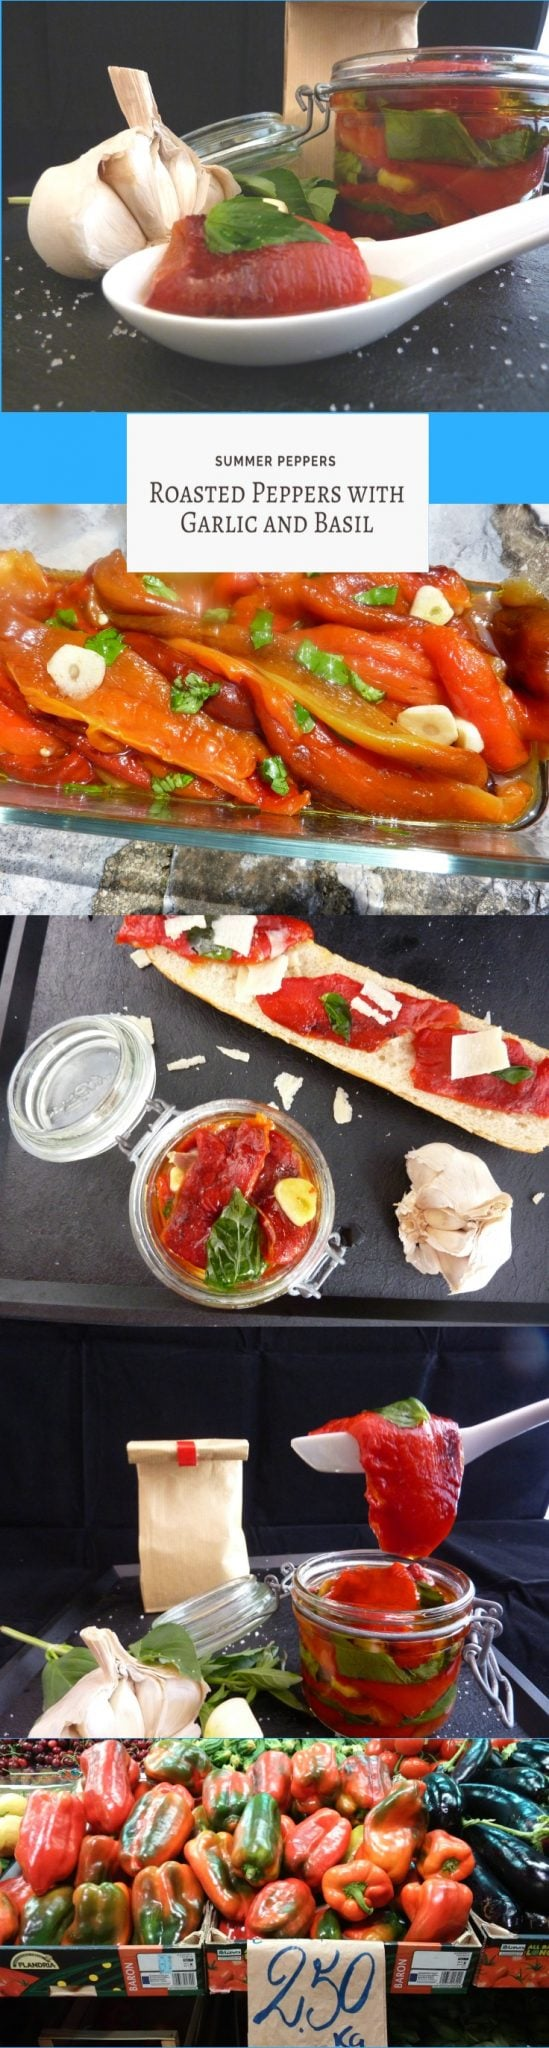 Summer Peppers with garlic and basil